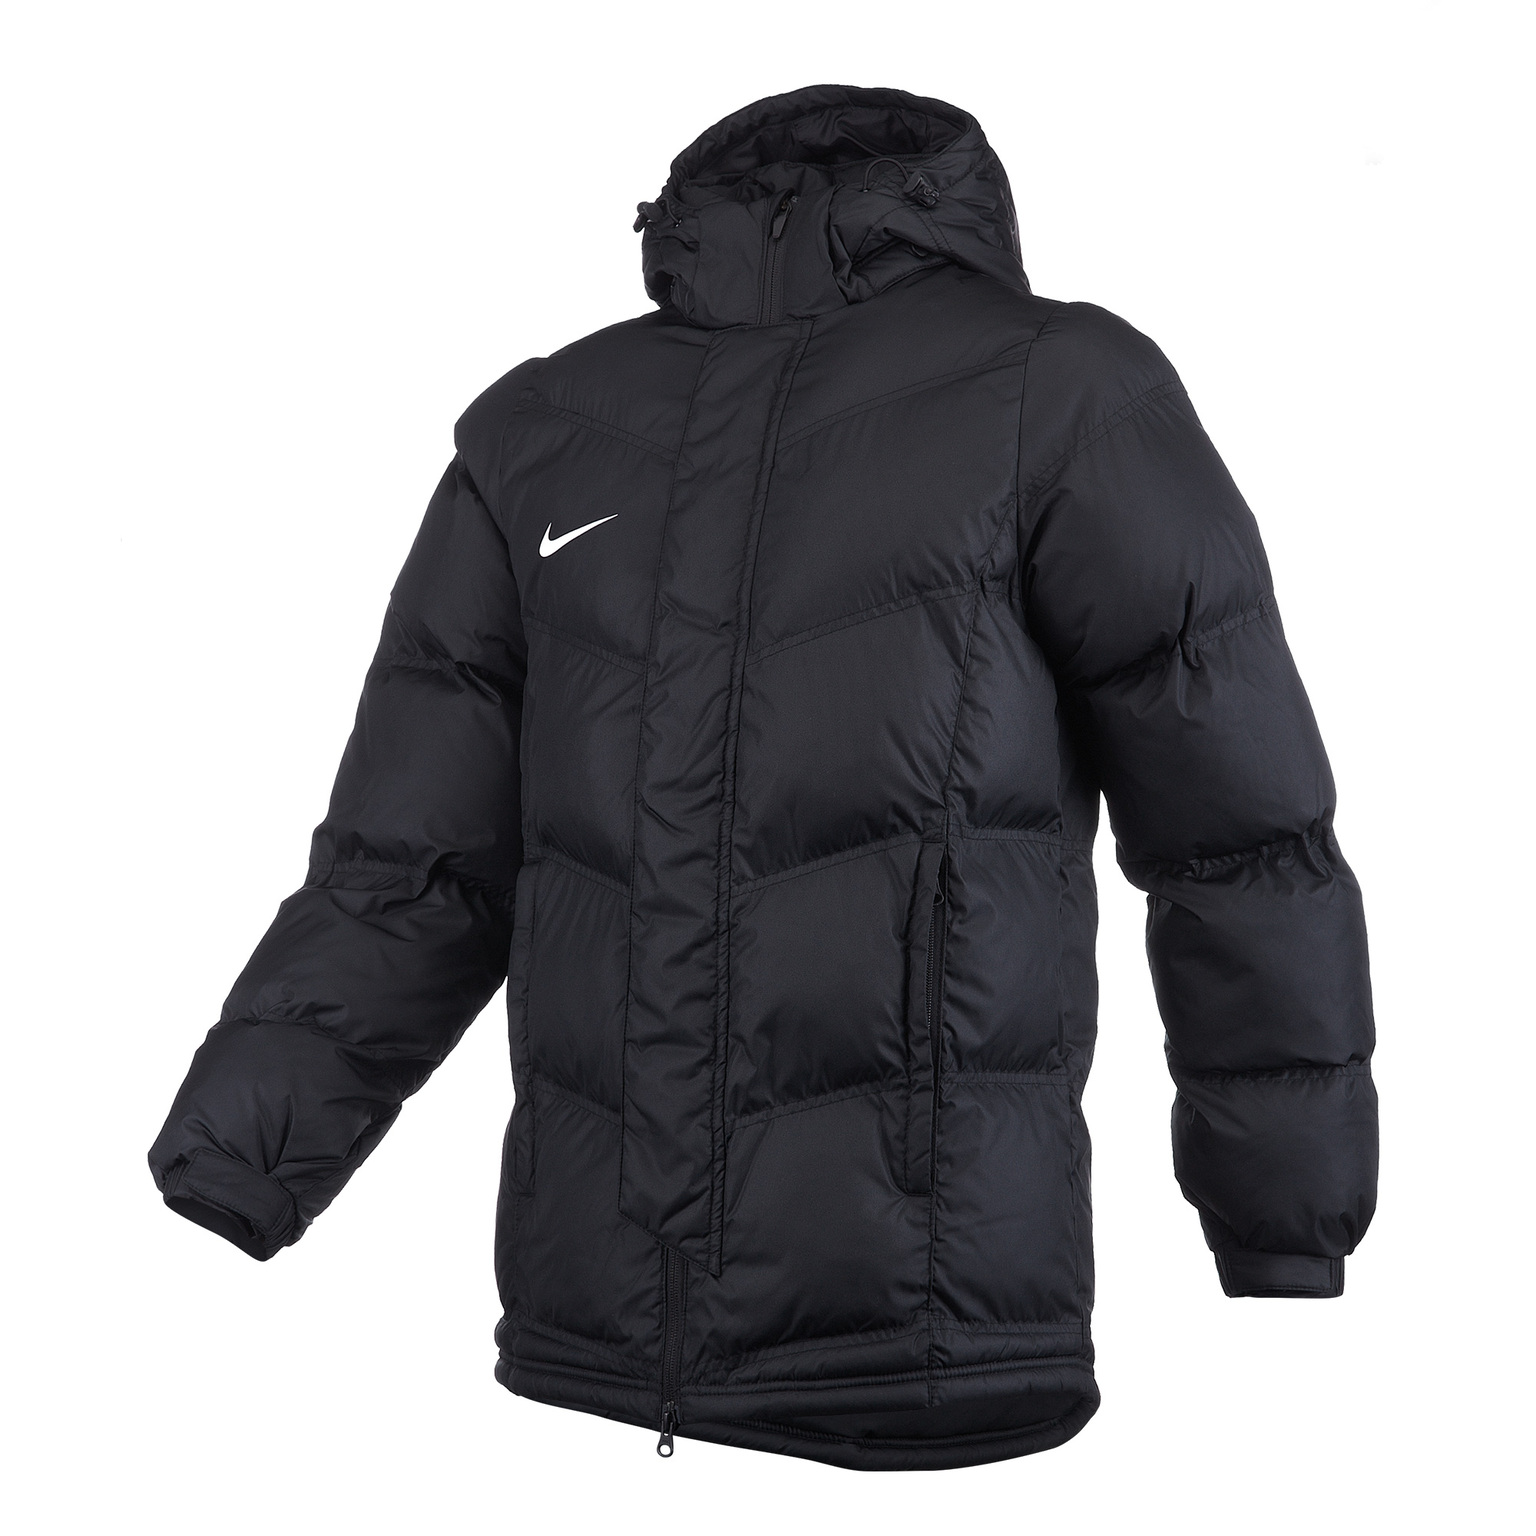 Куртка Nike Team Winter JKT 645484-010